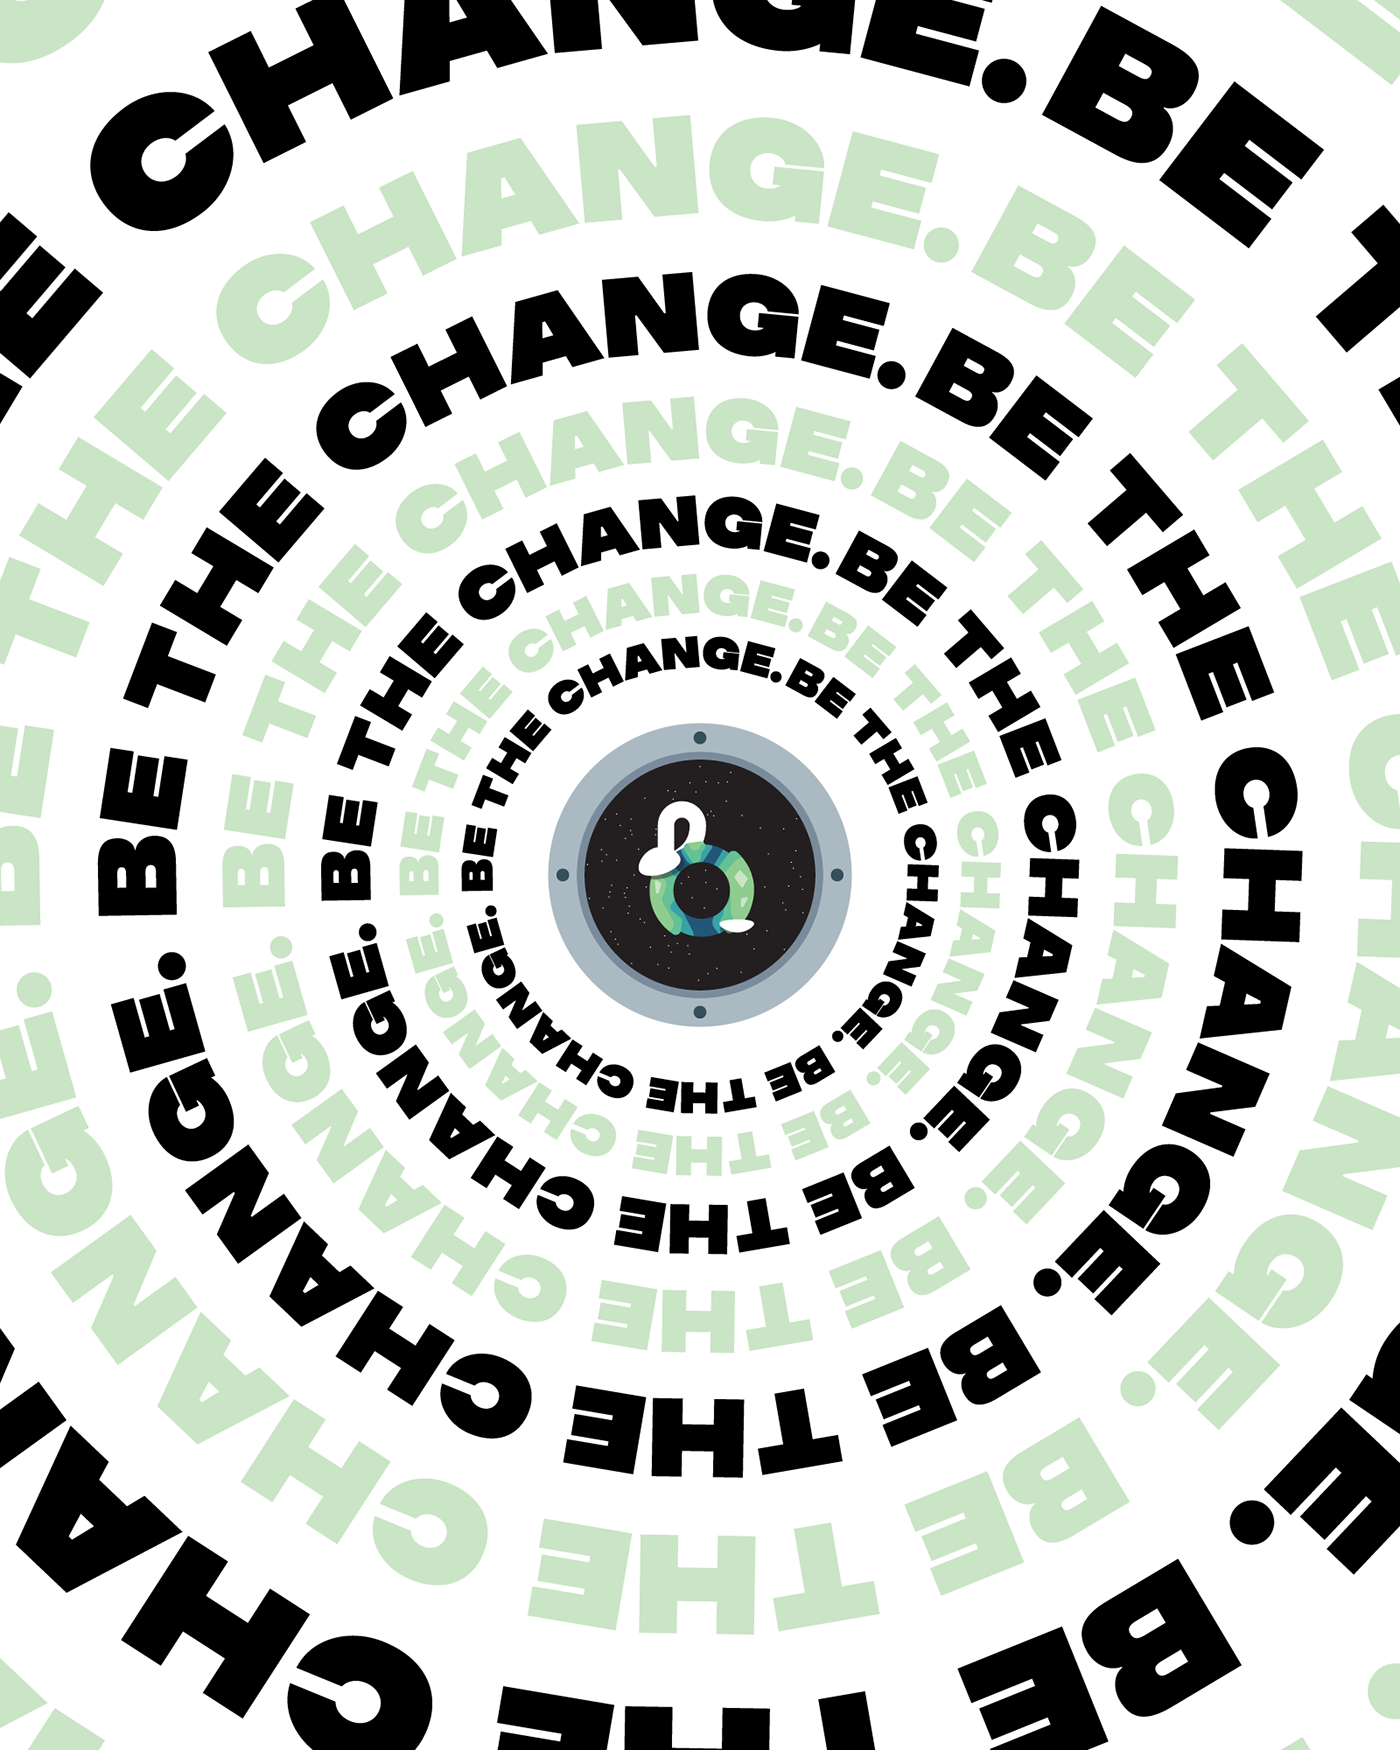 A poster design for the Be The Change sticker.